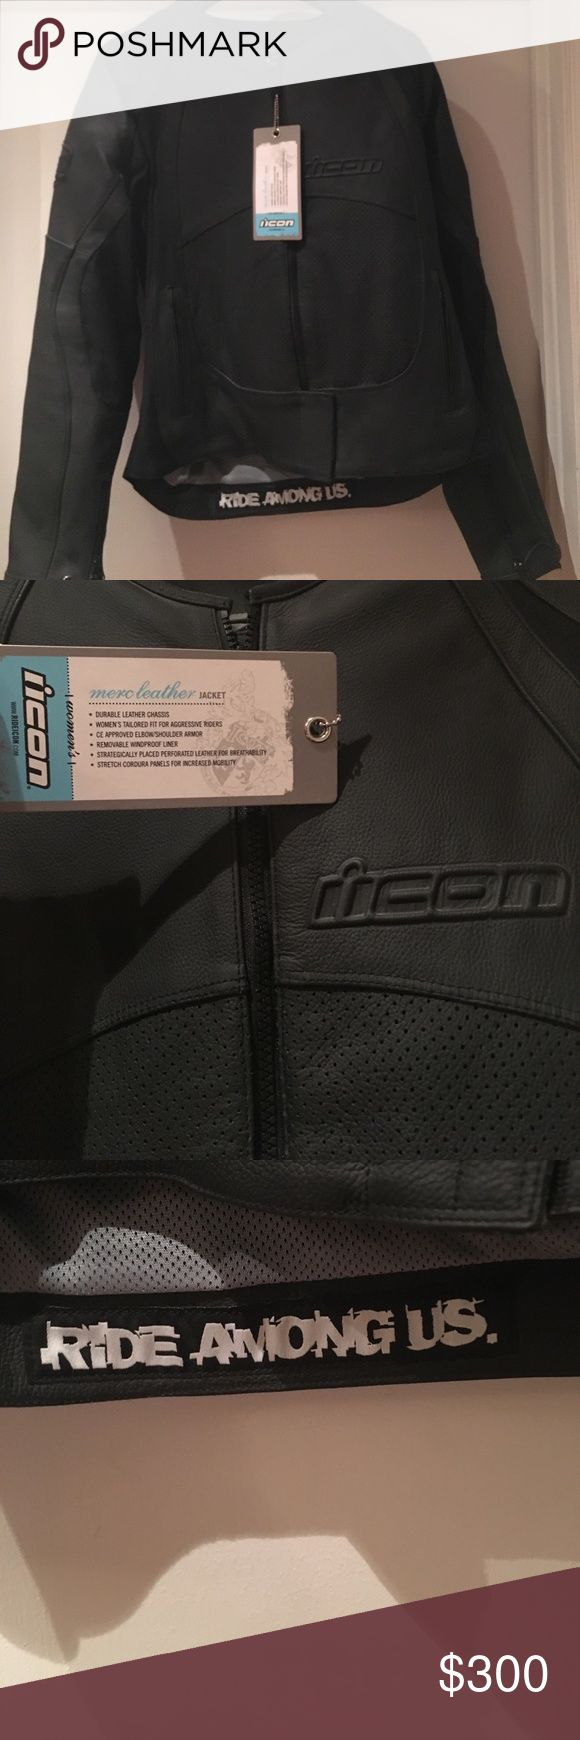 ICON Motorcycle Jacket Size large, features removable inner lining, elbow and shoulder pads. BRAND NEW! NEW USED! Weighs about 6 lbs. Feel free to make an offer! Let me know if you have any questions. ICON Jackets & Coats